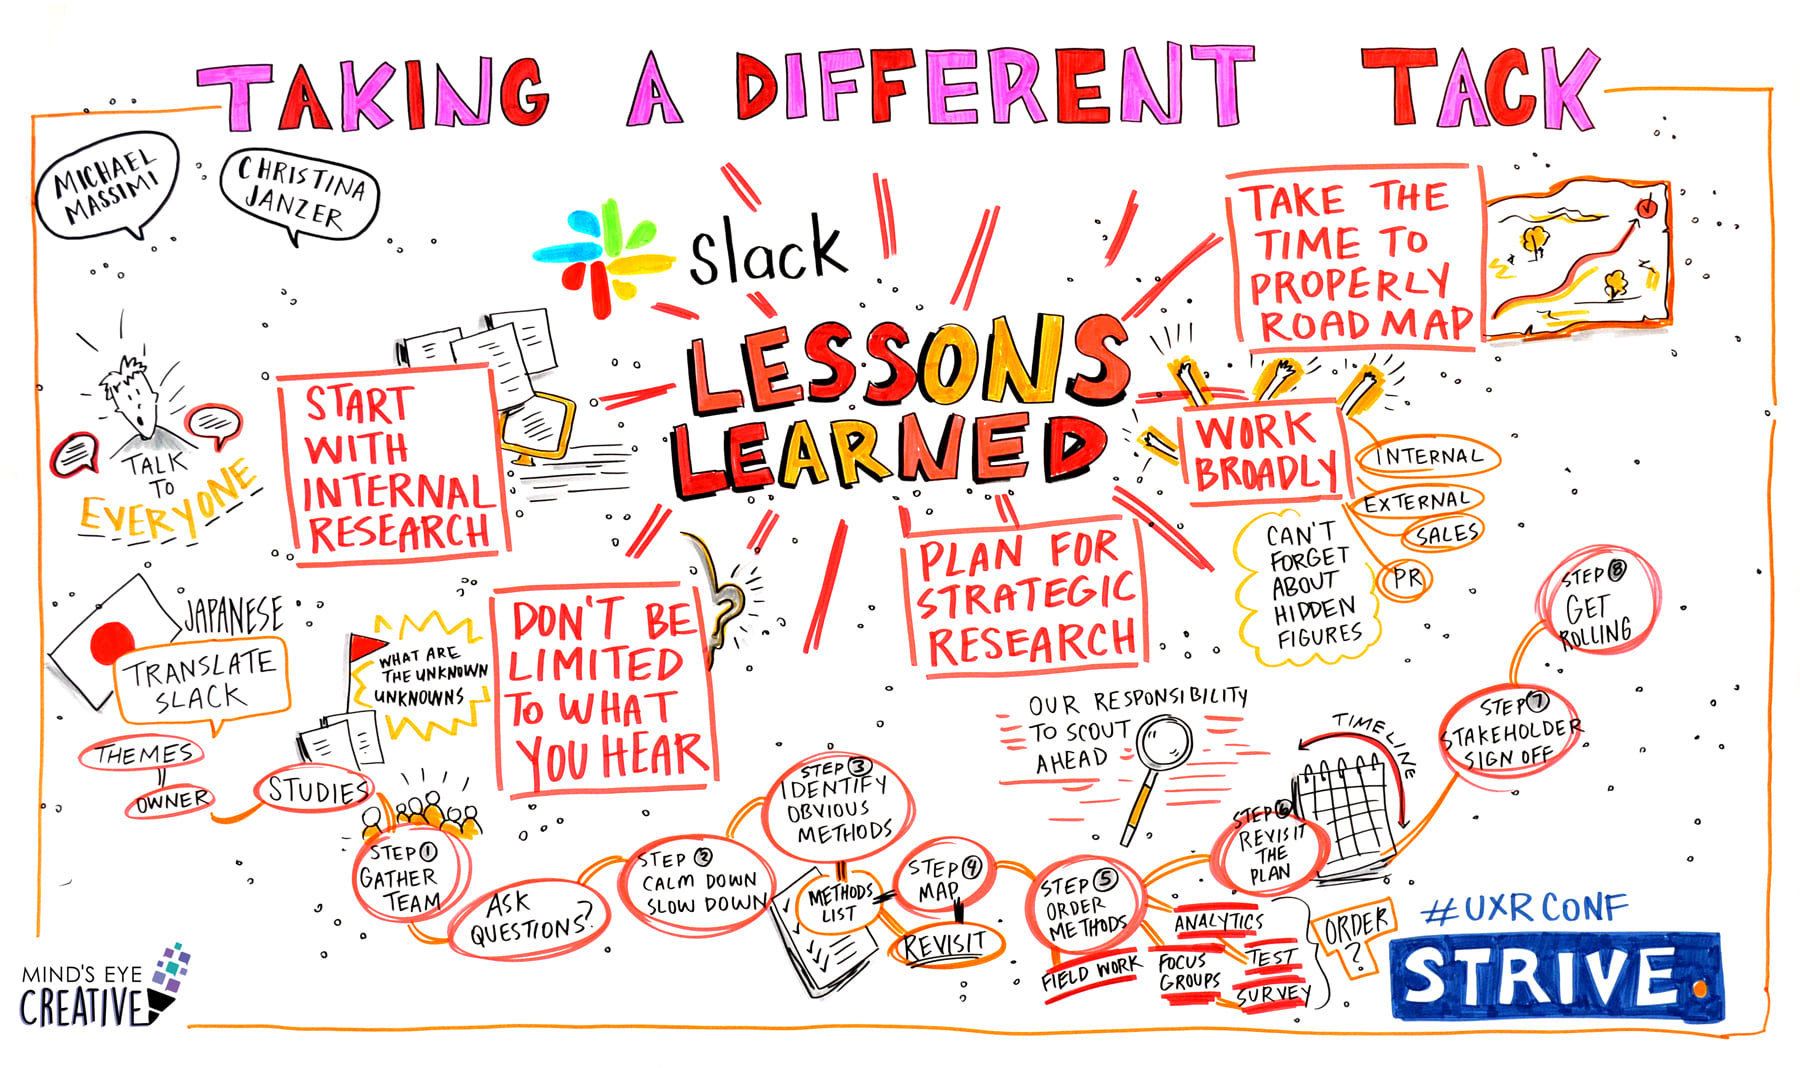 Sketchnote graphic from Strive conference in Toronto 2019